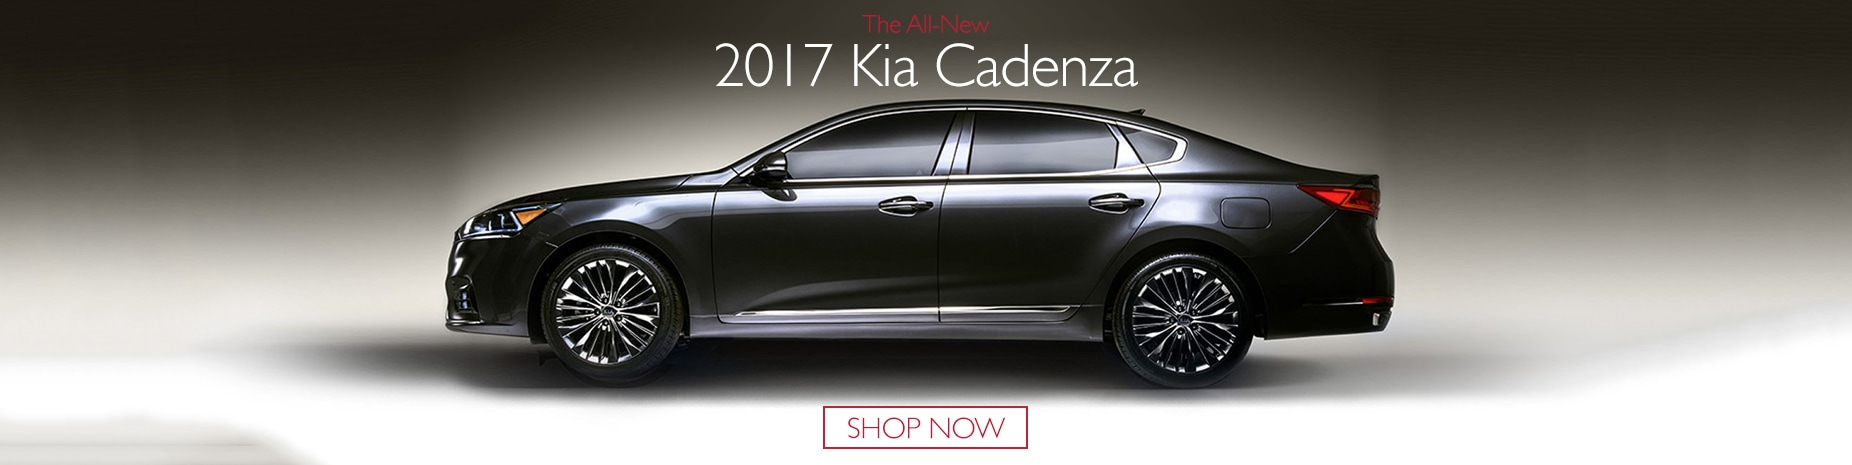 the blue kia chris a cars of limited about truth quarter cadenza better front buick review gravity image tonn